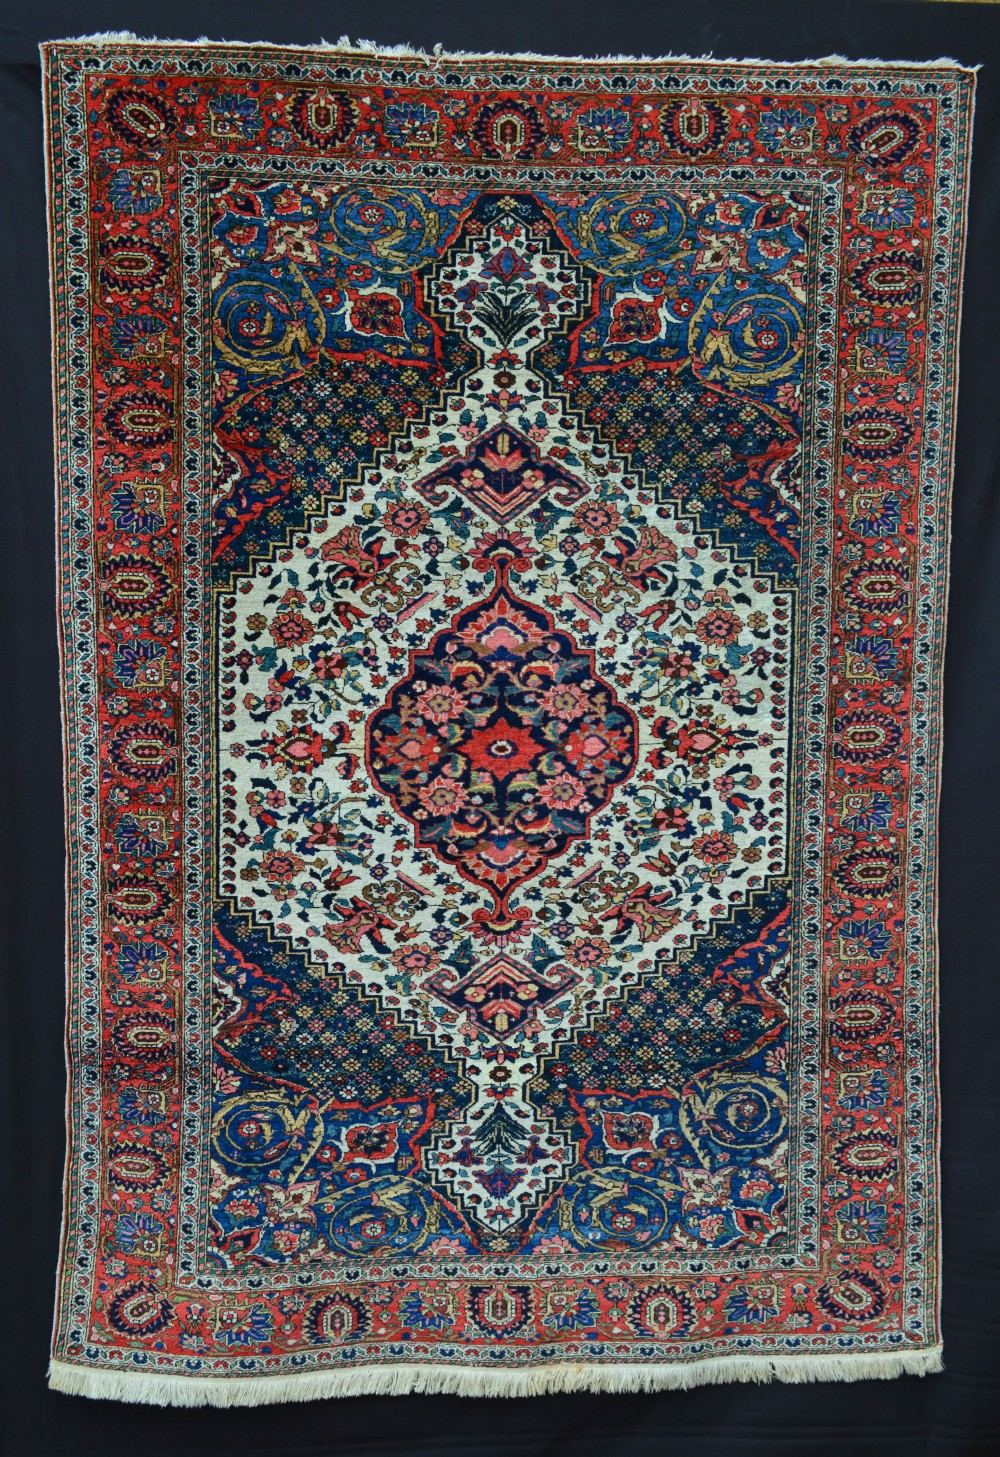 antique bakhtiari rug the chahar mahal region western persia